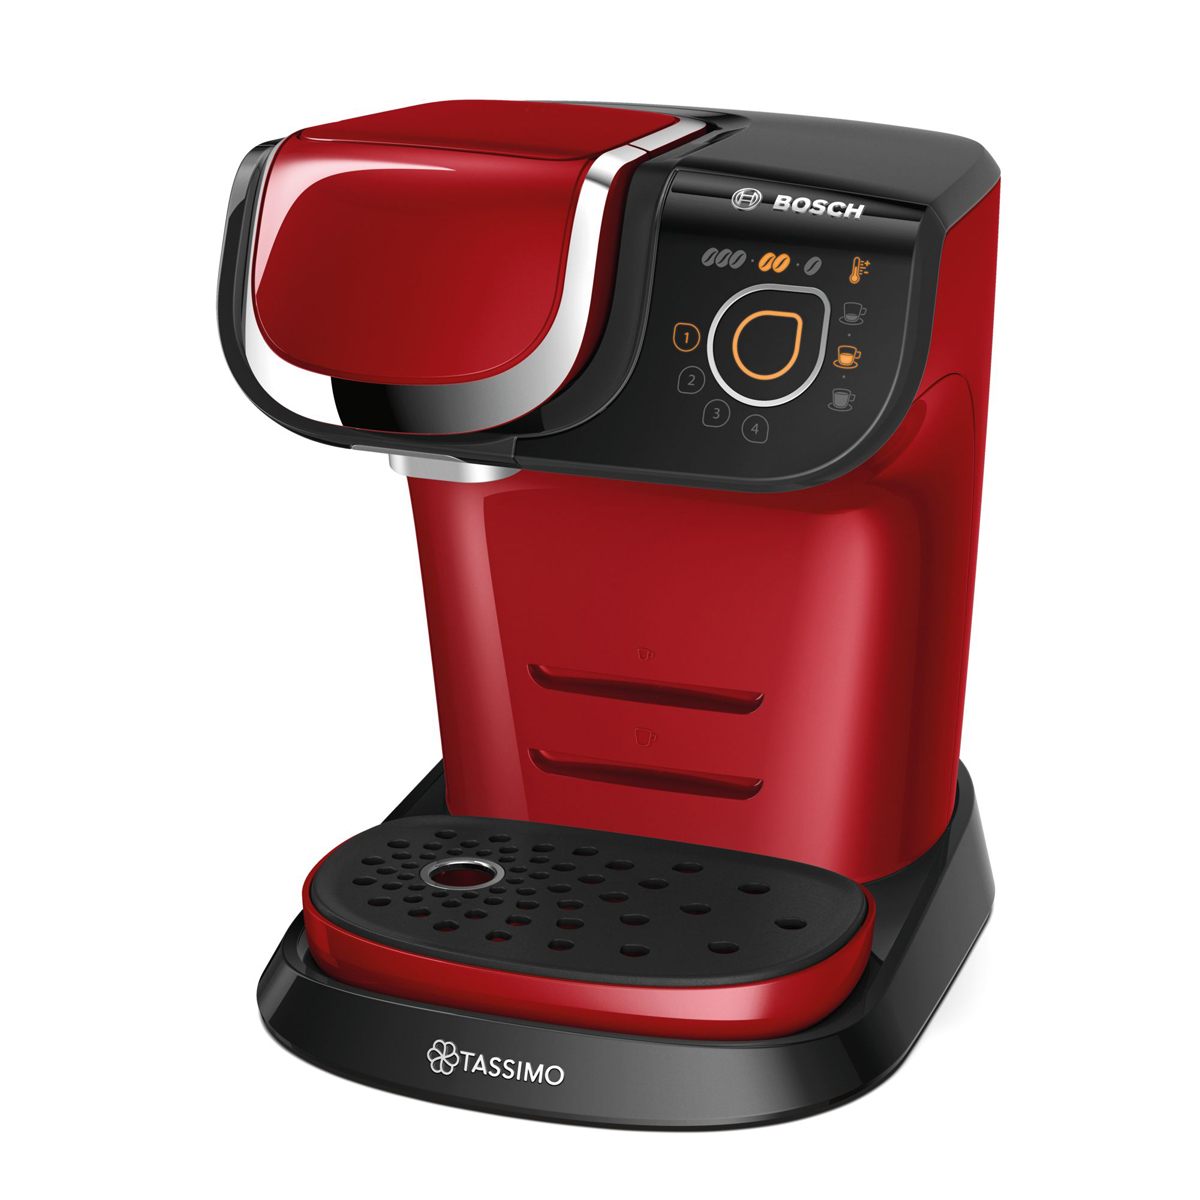 bosch coffee maker tassimo my way red 1 kitchen spain. Black Bedroom Furniture Sets. Home Design Ideas